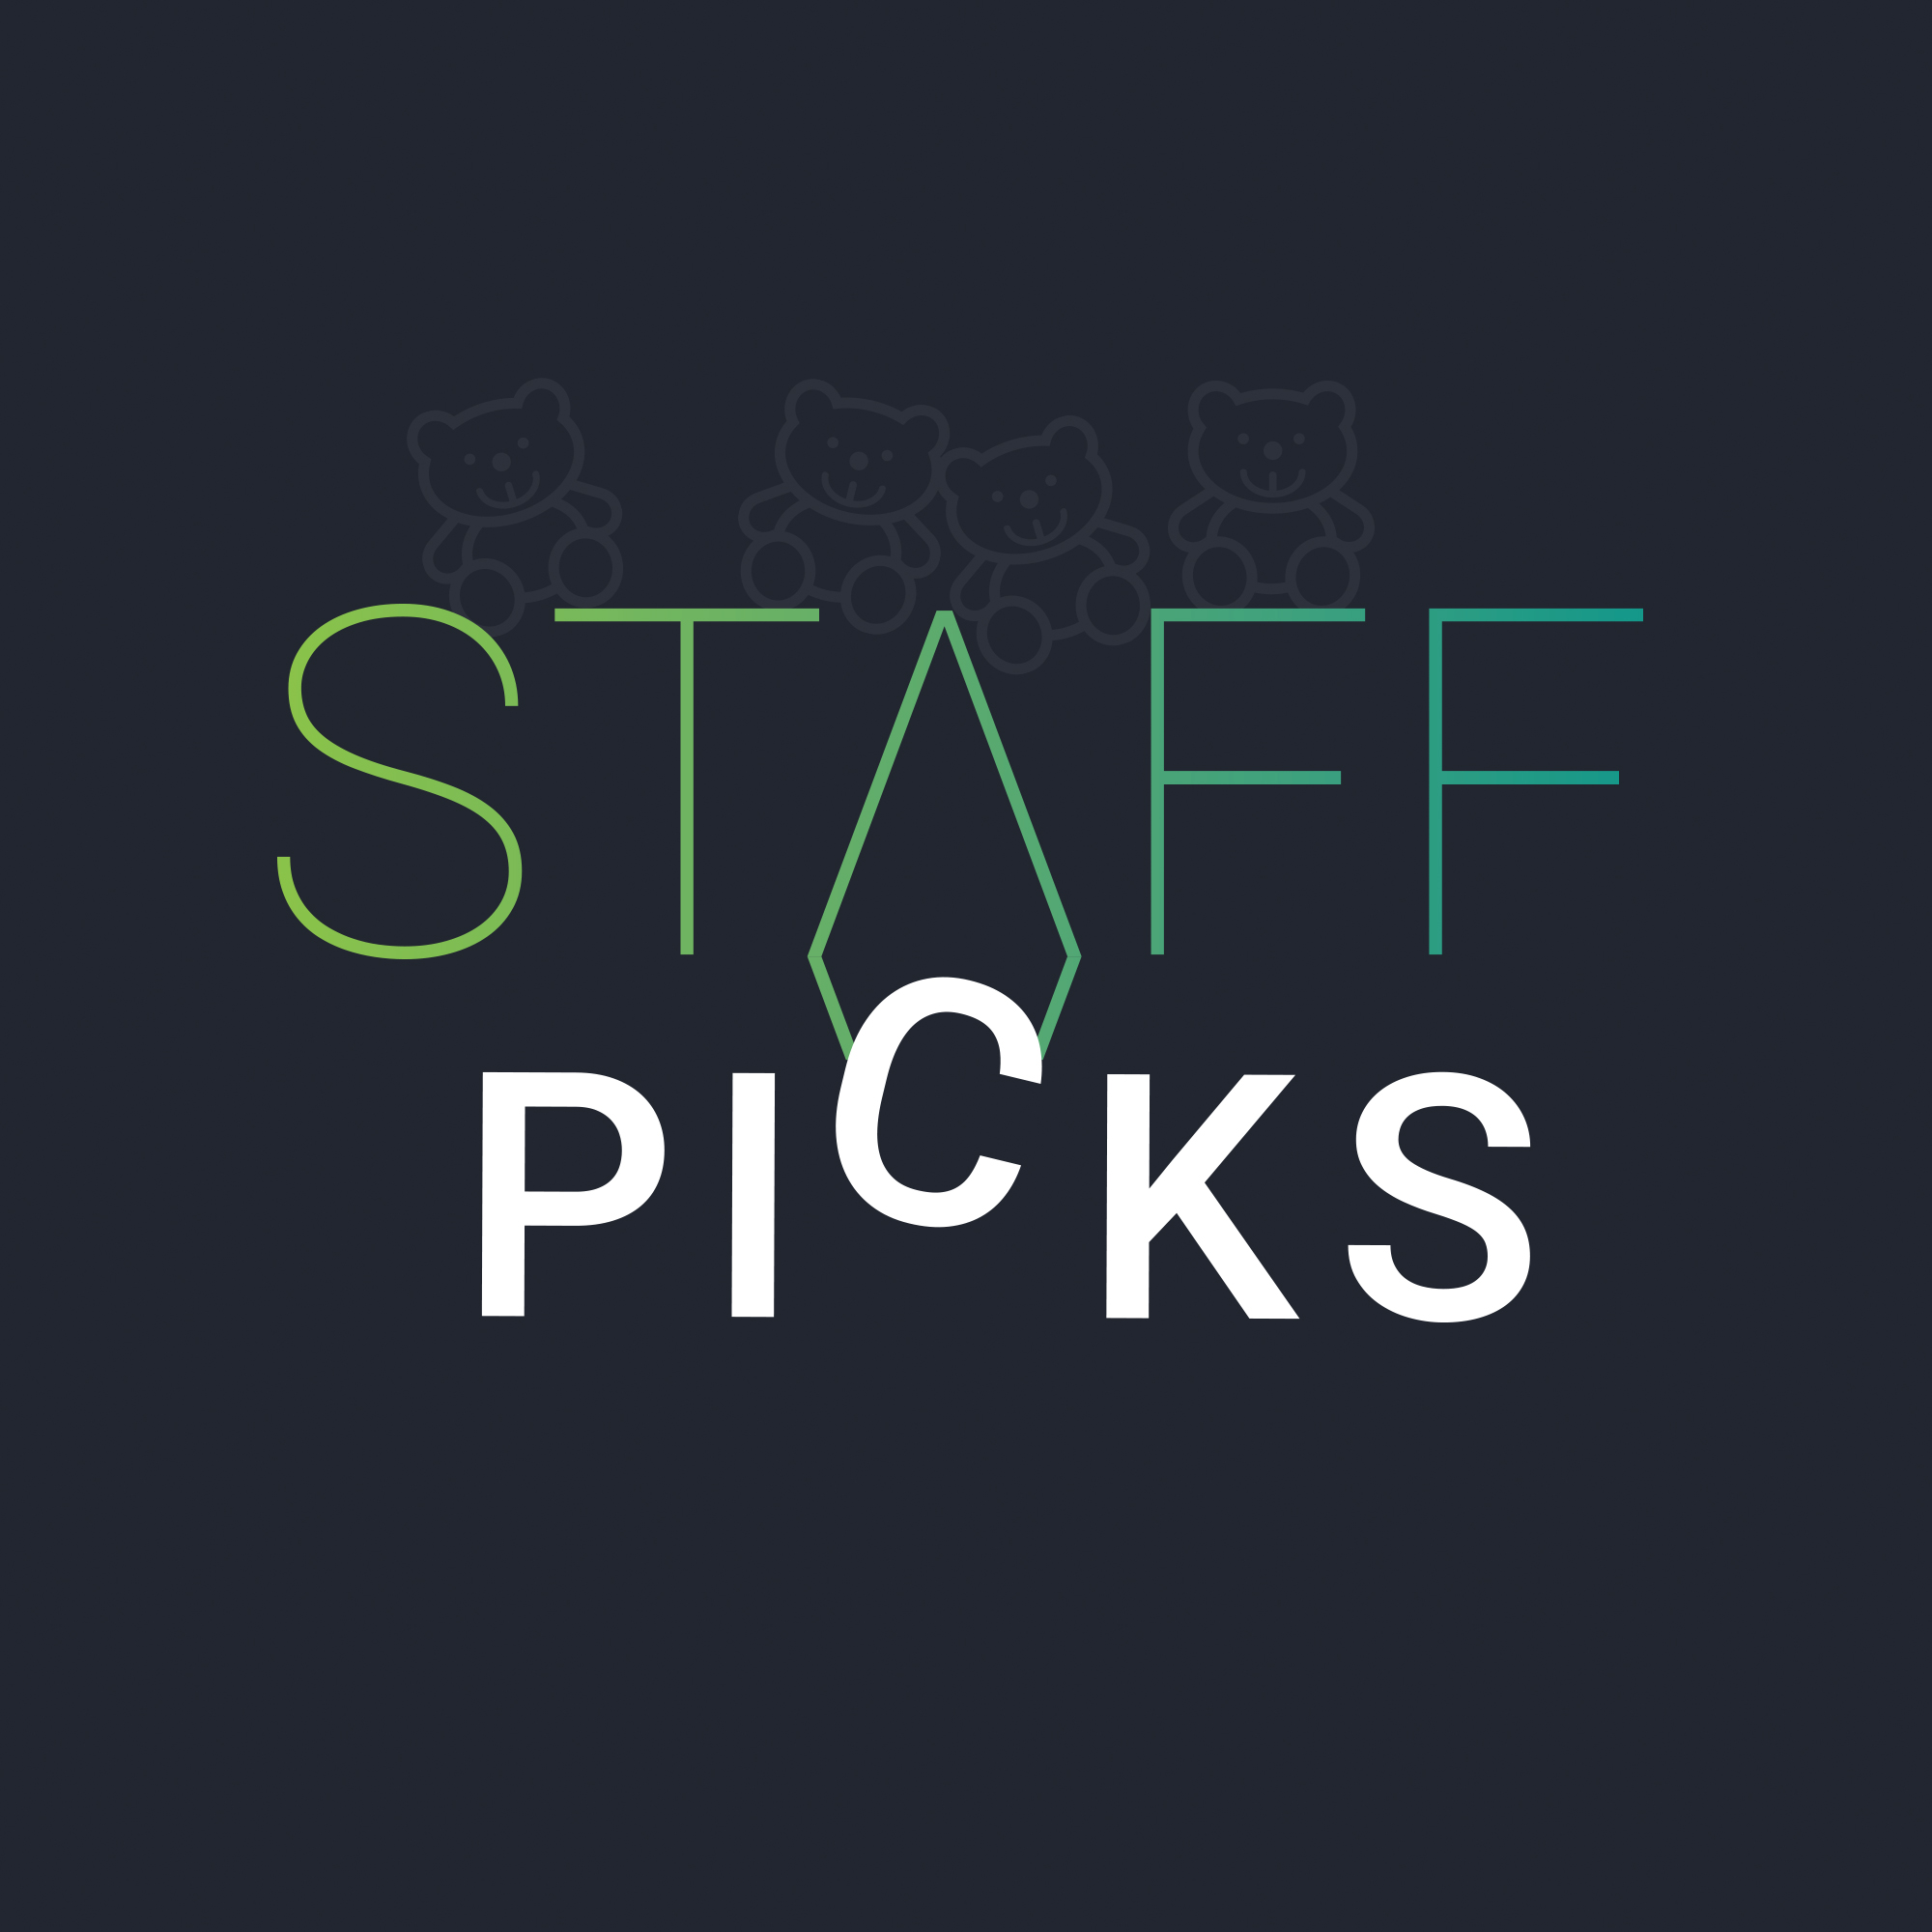 Asset Store Staff Picks